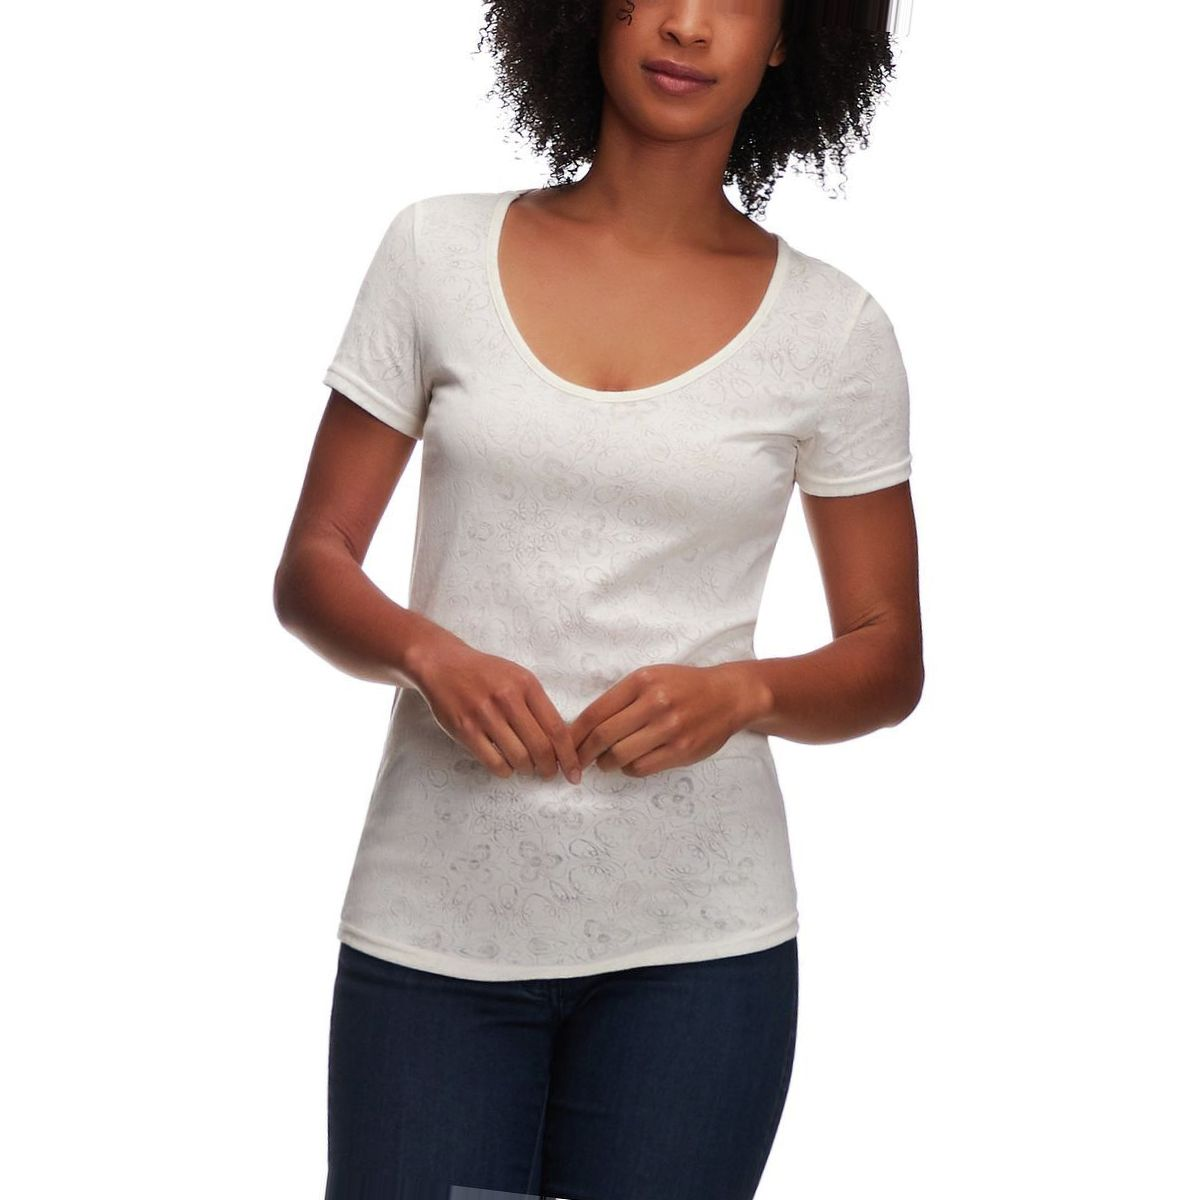 Basin and Range Silver Star Short-Sleeve Top - Women's